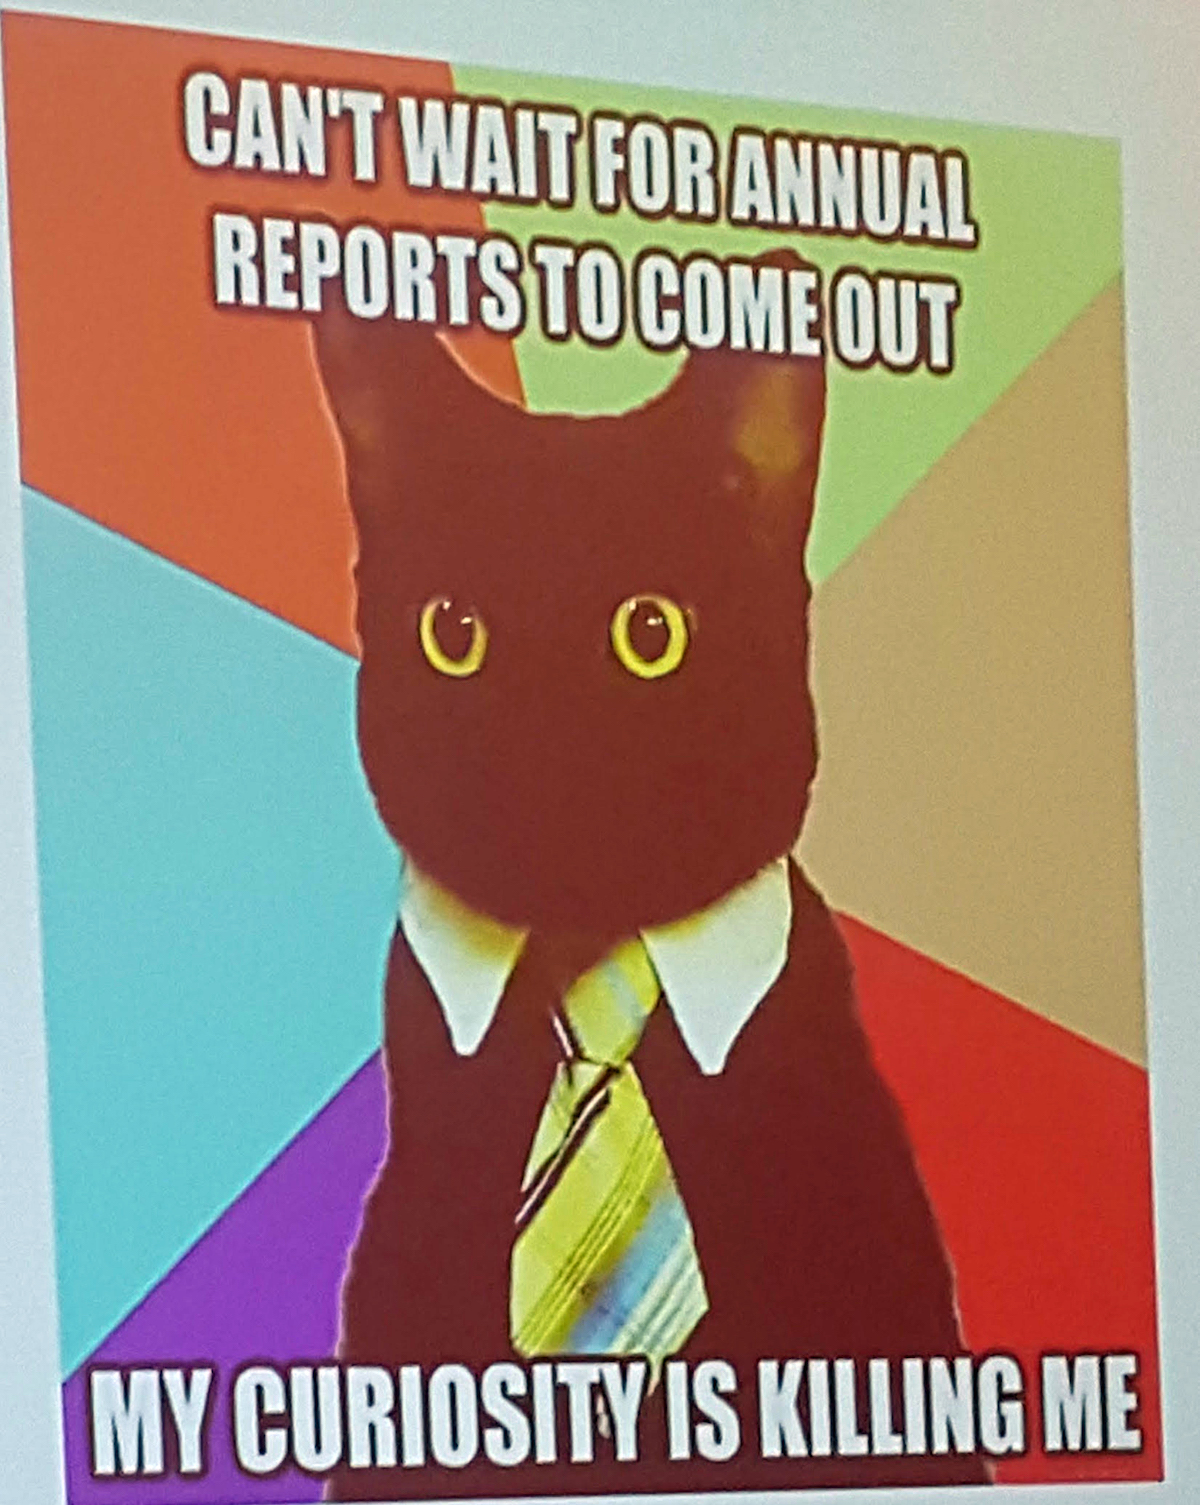 Every talk needs at least one cat image